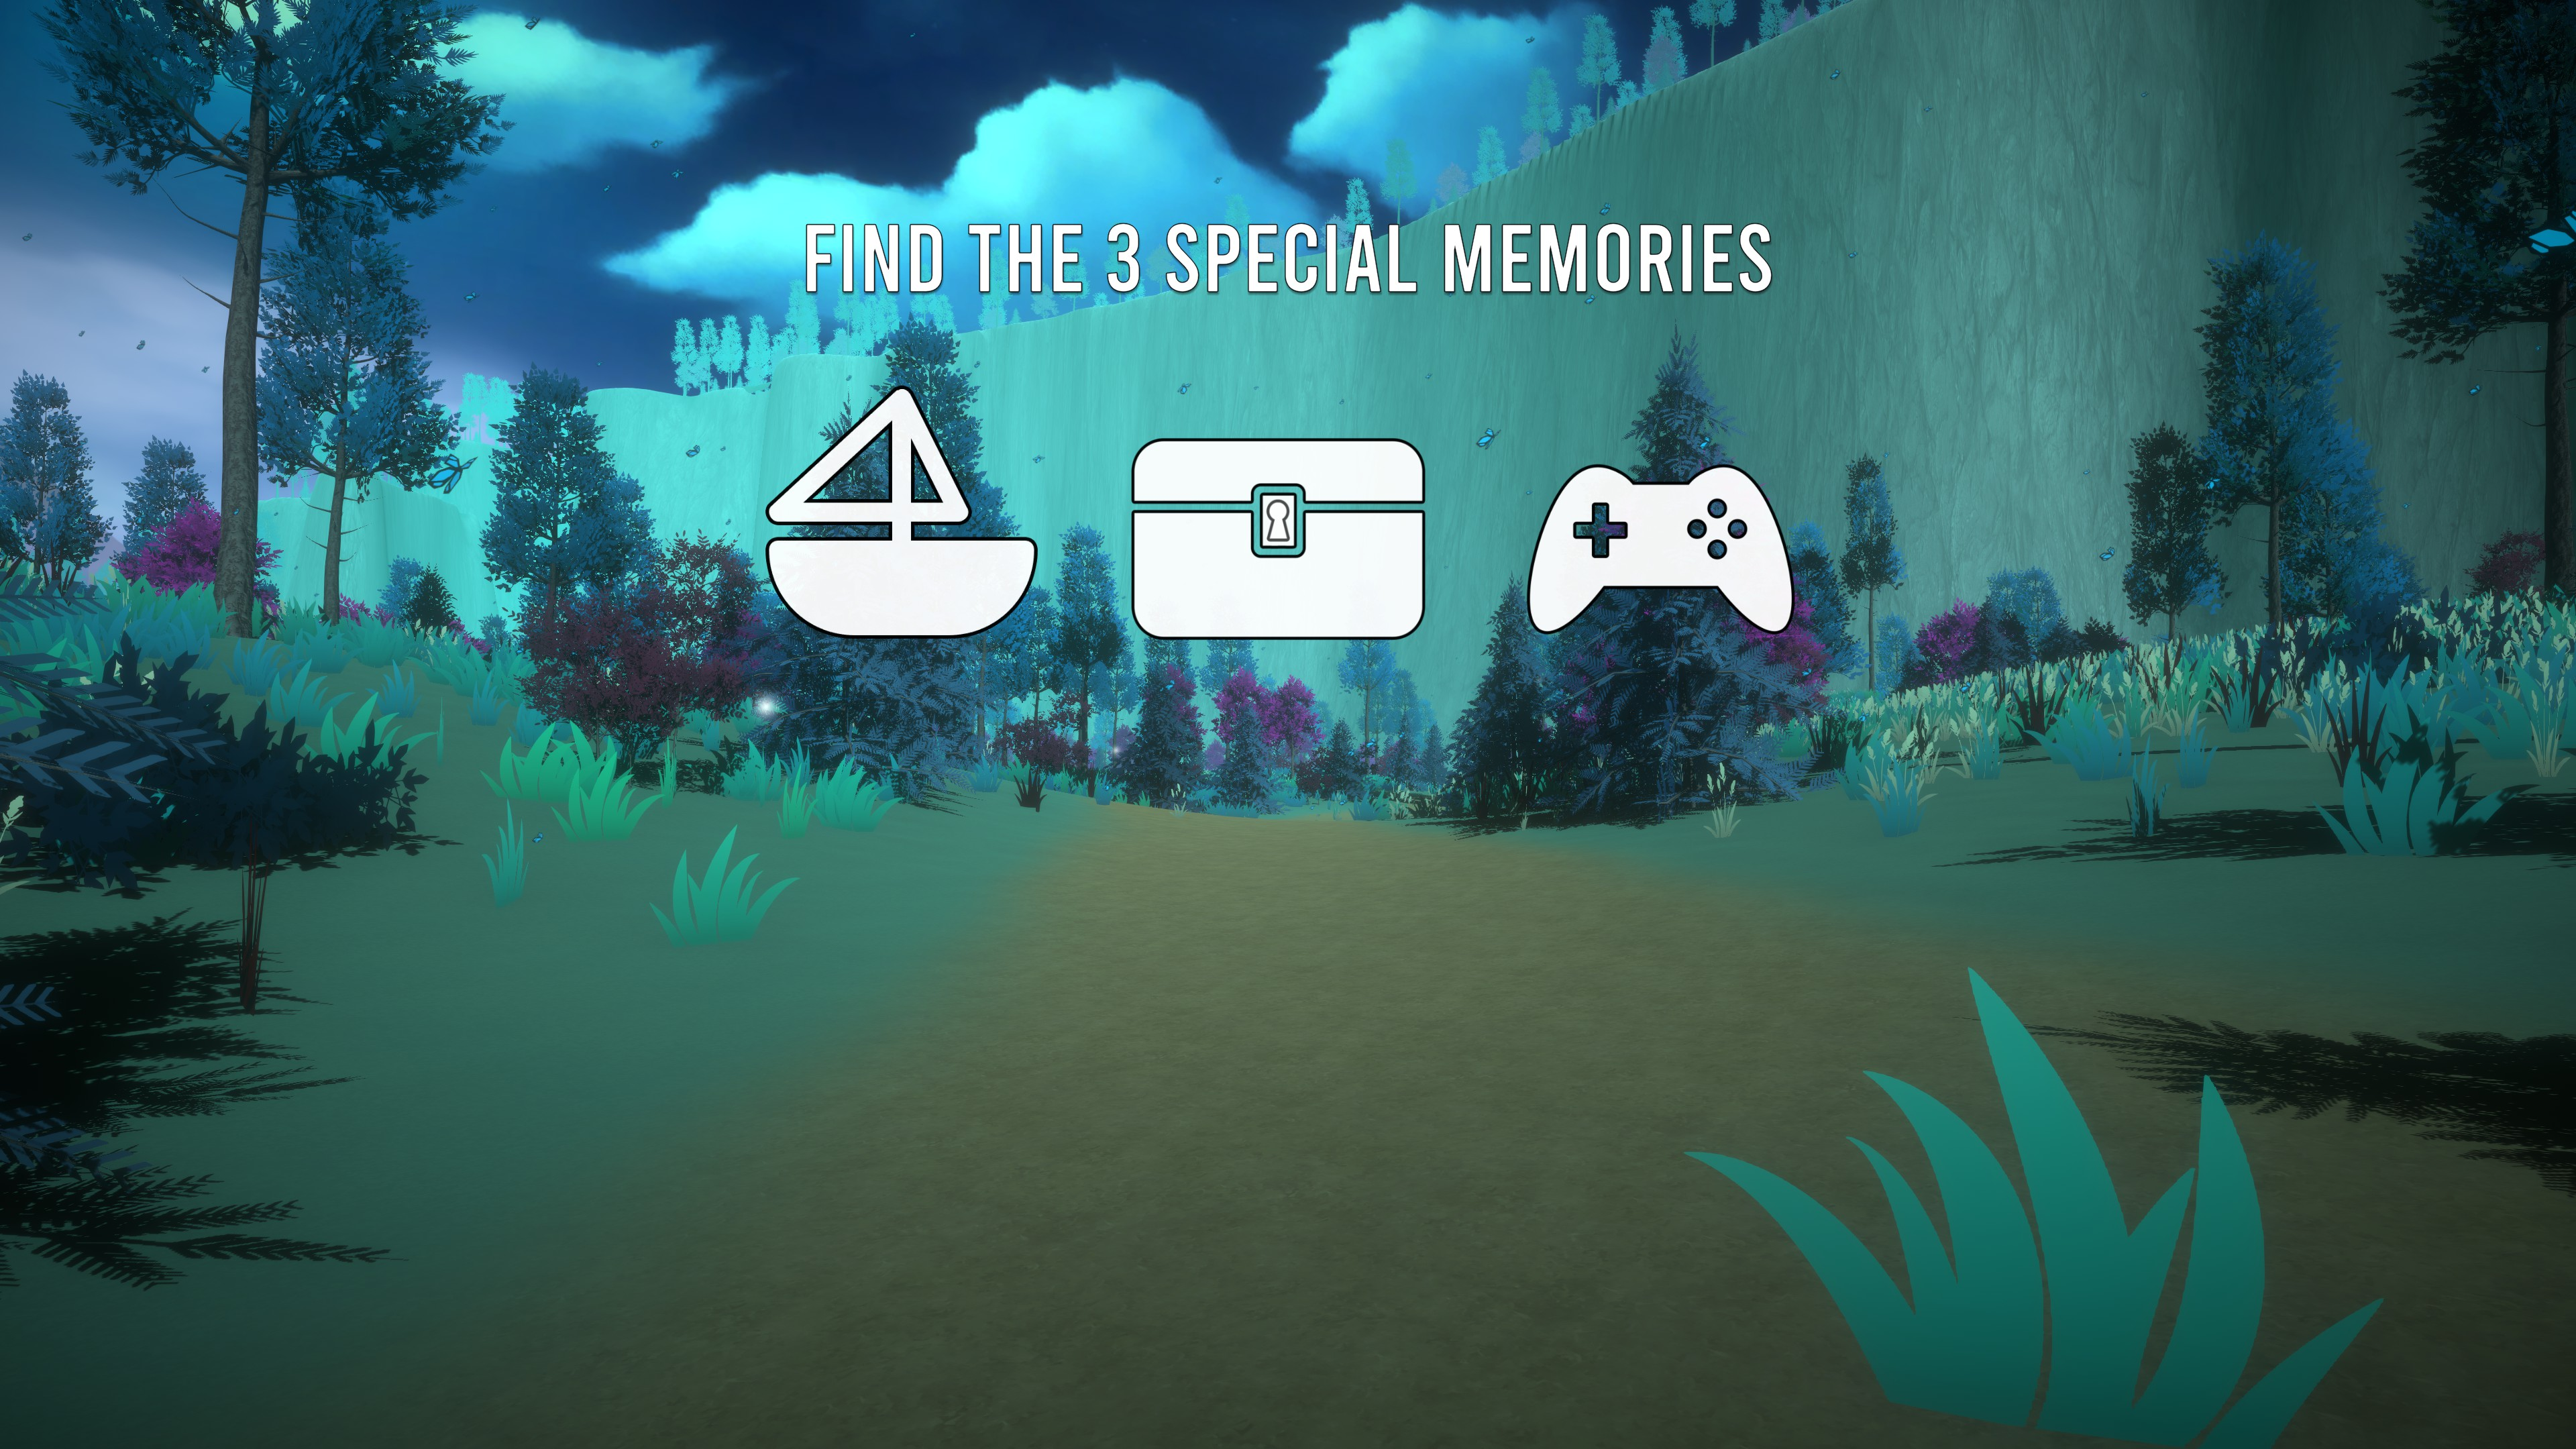 The First Friend. Instructions to find 3 memories related to a boat, chest, and game controller.